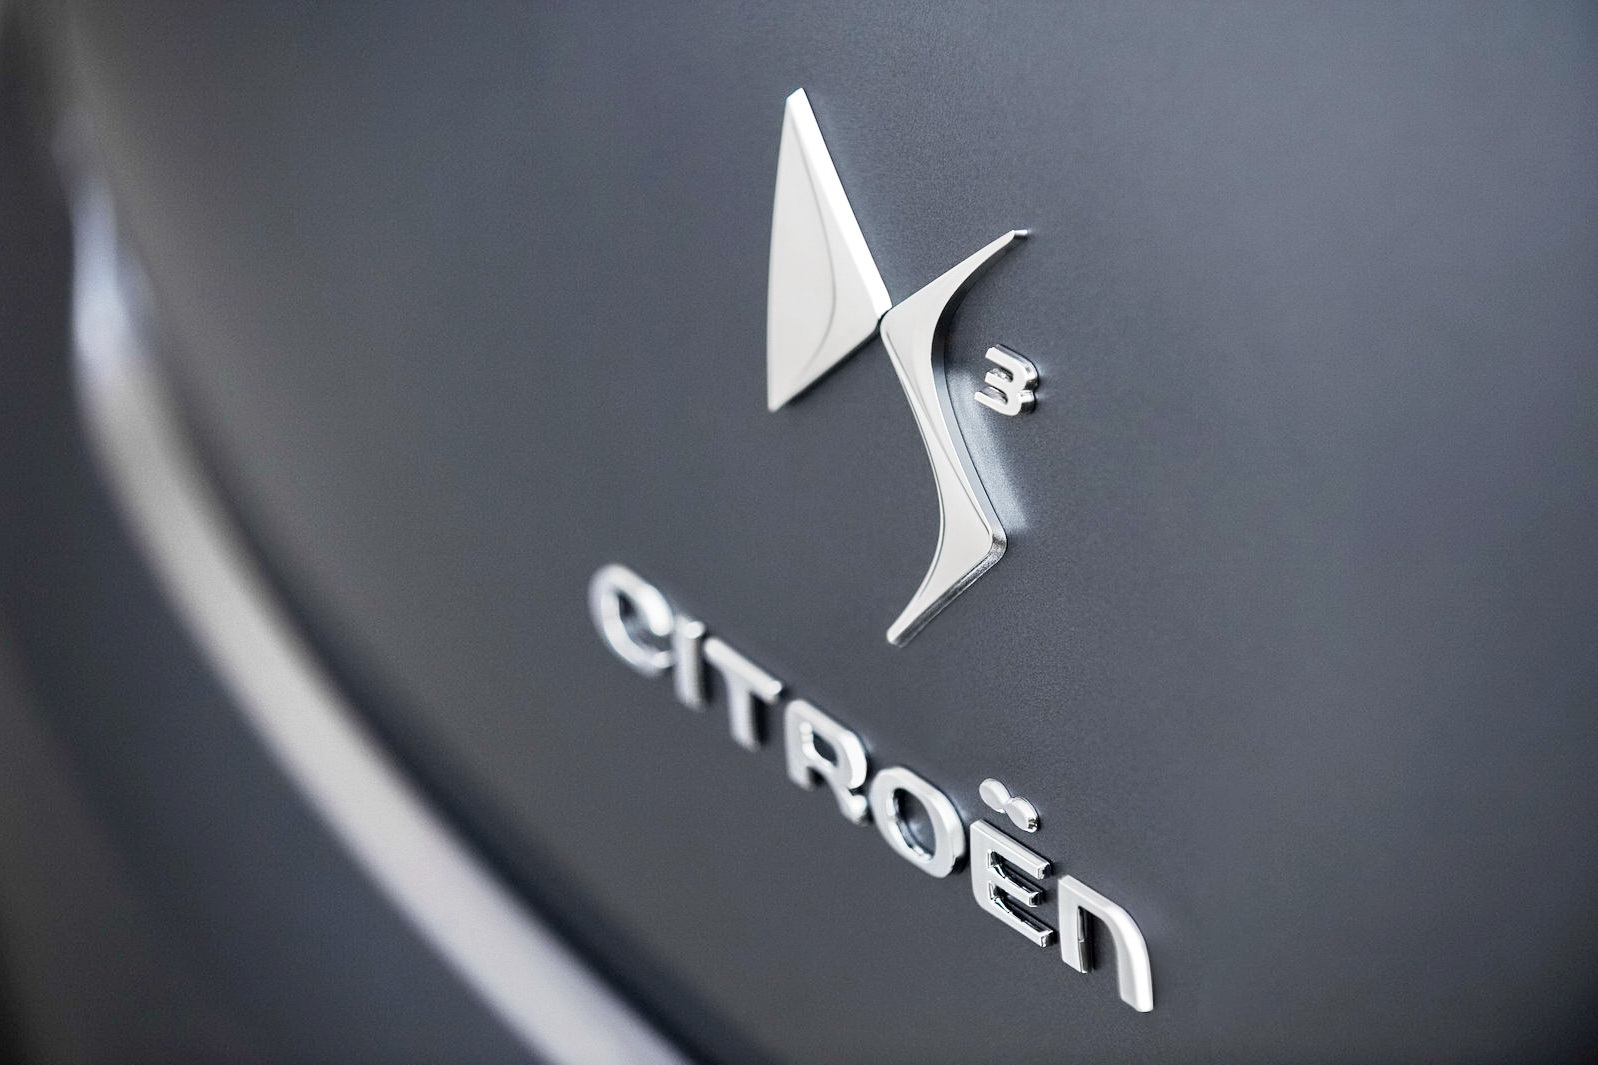 Citroen's offerings for the Paris Motor Show